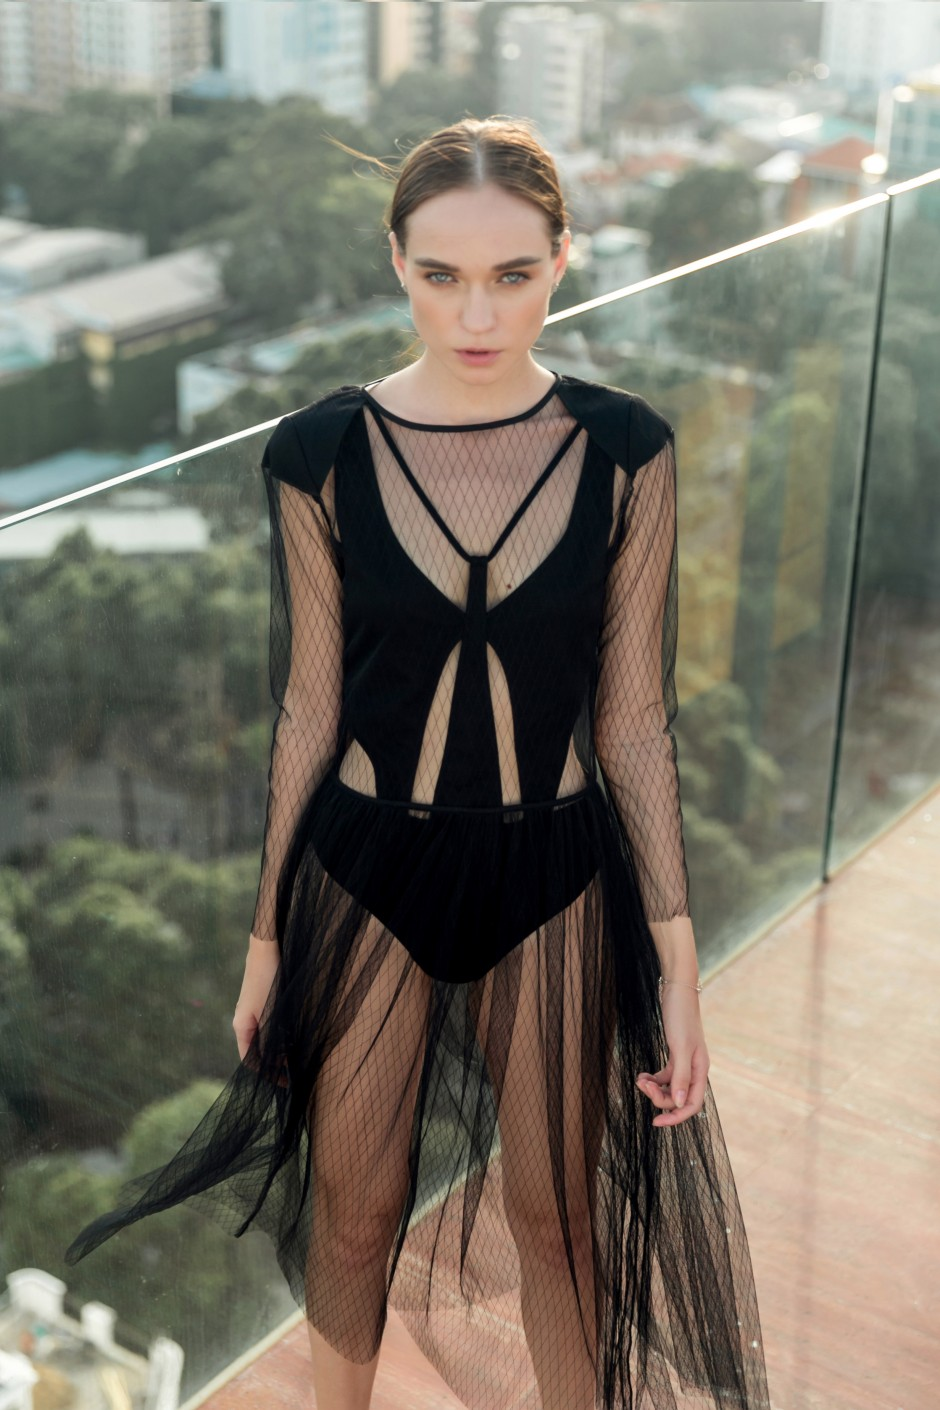 Edgy Netting Dress